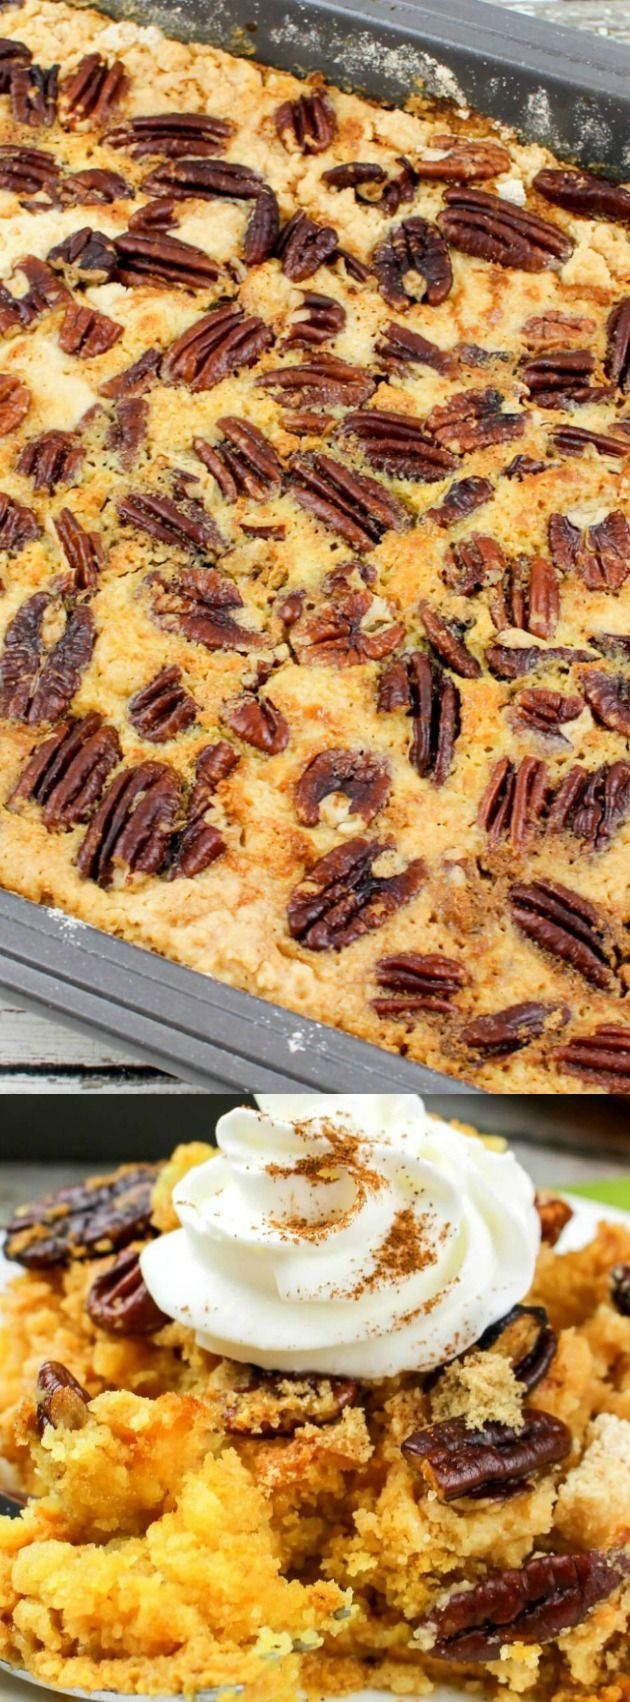 This Pumpkin Pecan Dump Cake from Lisa at My Incredible Recipes is going to become your new go-to holiday dessert! It is SO easy to make and the recipe uses simple ingredients that come together to make a fall dessert that your friends and family will really love!